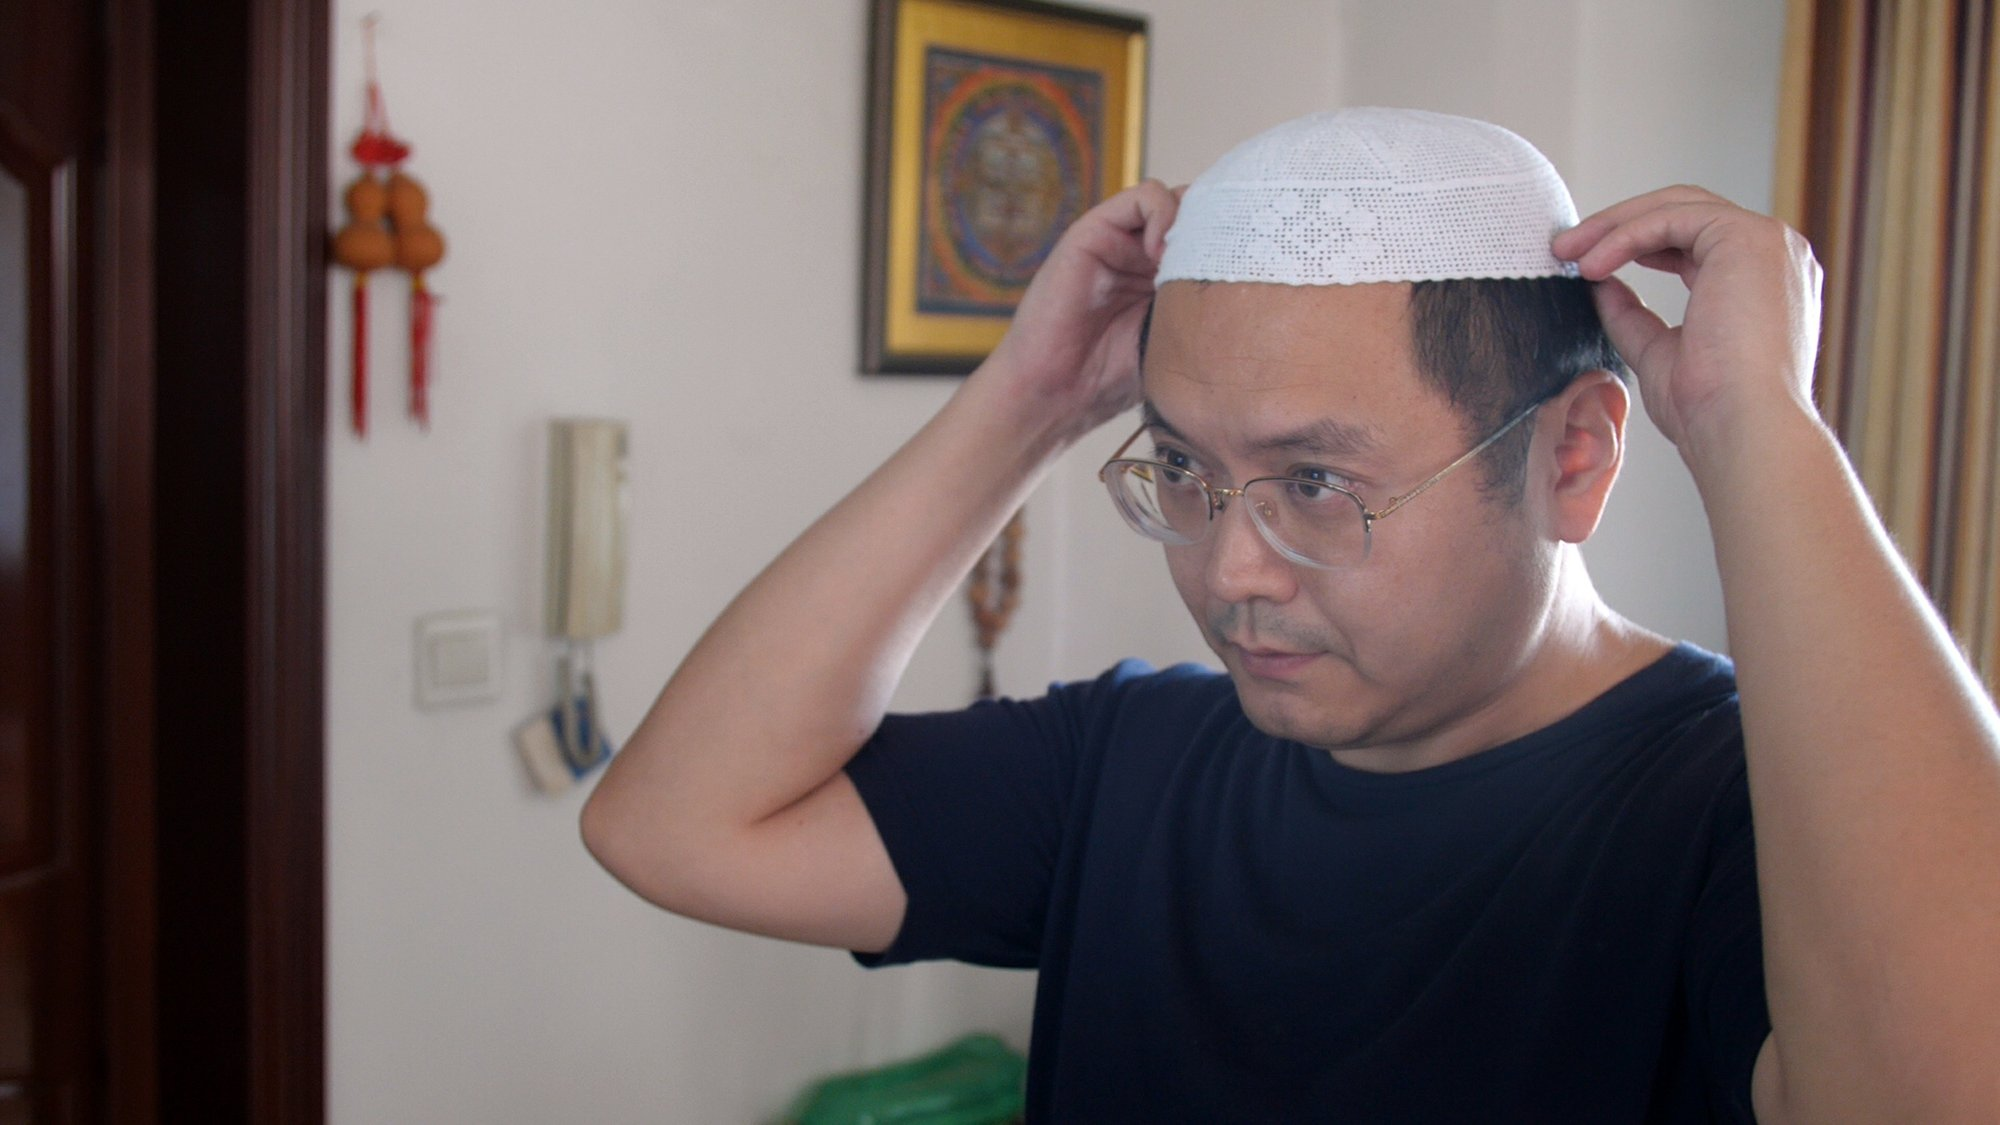 Hui poet fears for his people as China 'Sinicizes' religion